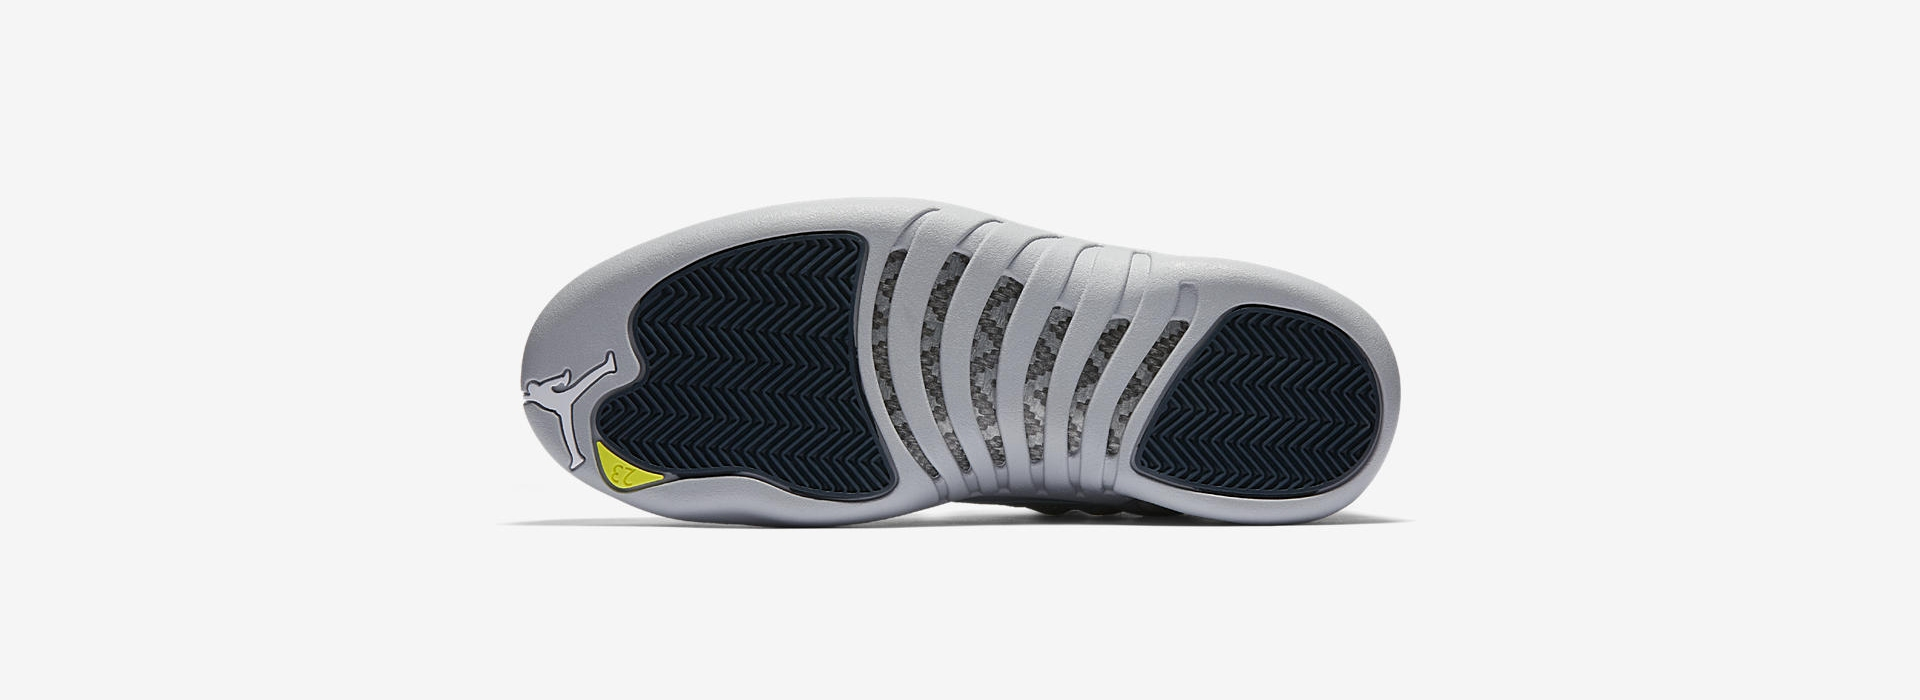 100% authentic 03404 660e7 Air Jordan 12 (XII) Retro Low Color  Wolf Grey Armory Navy-Electrolime  Style  308317-002. Release Date  03 18 2017. Price   170.00